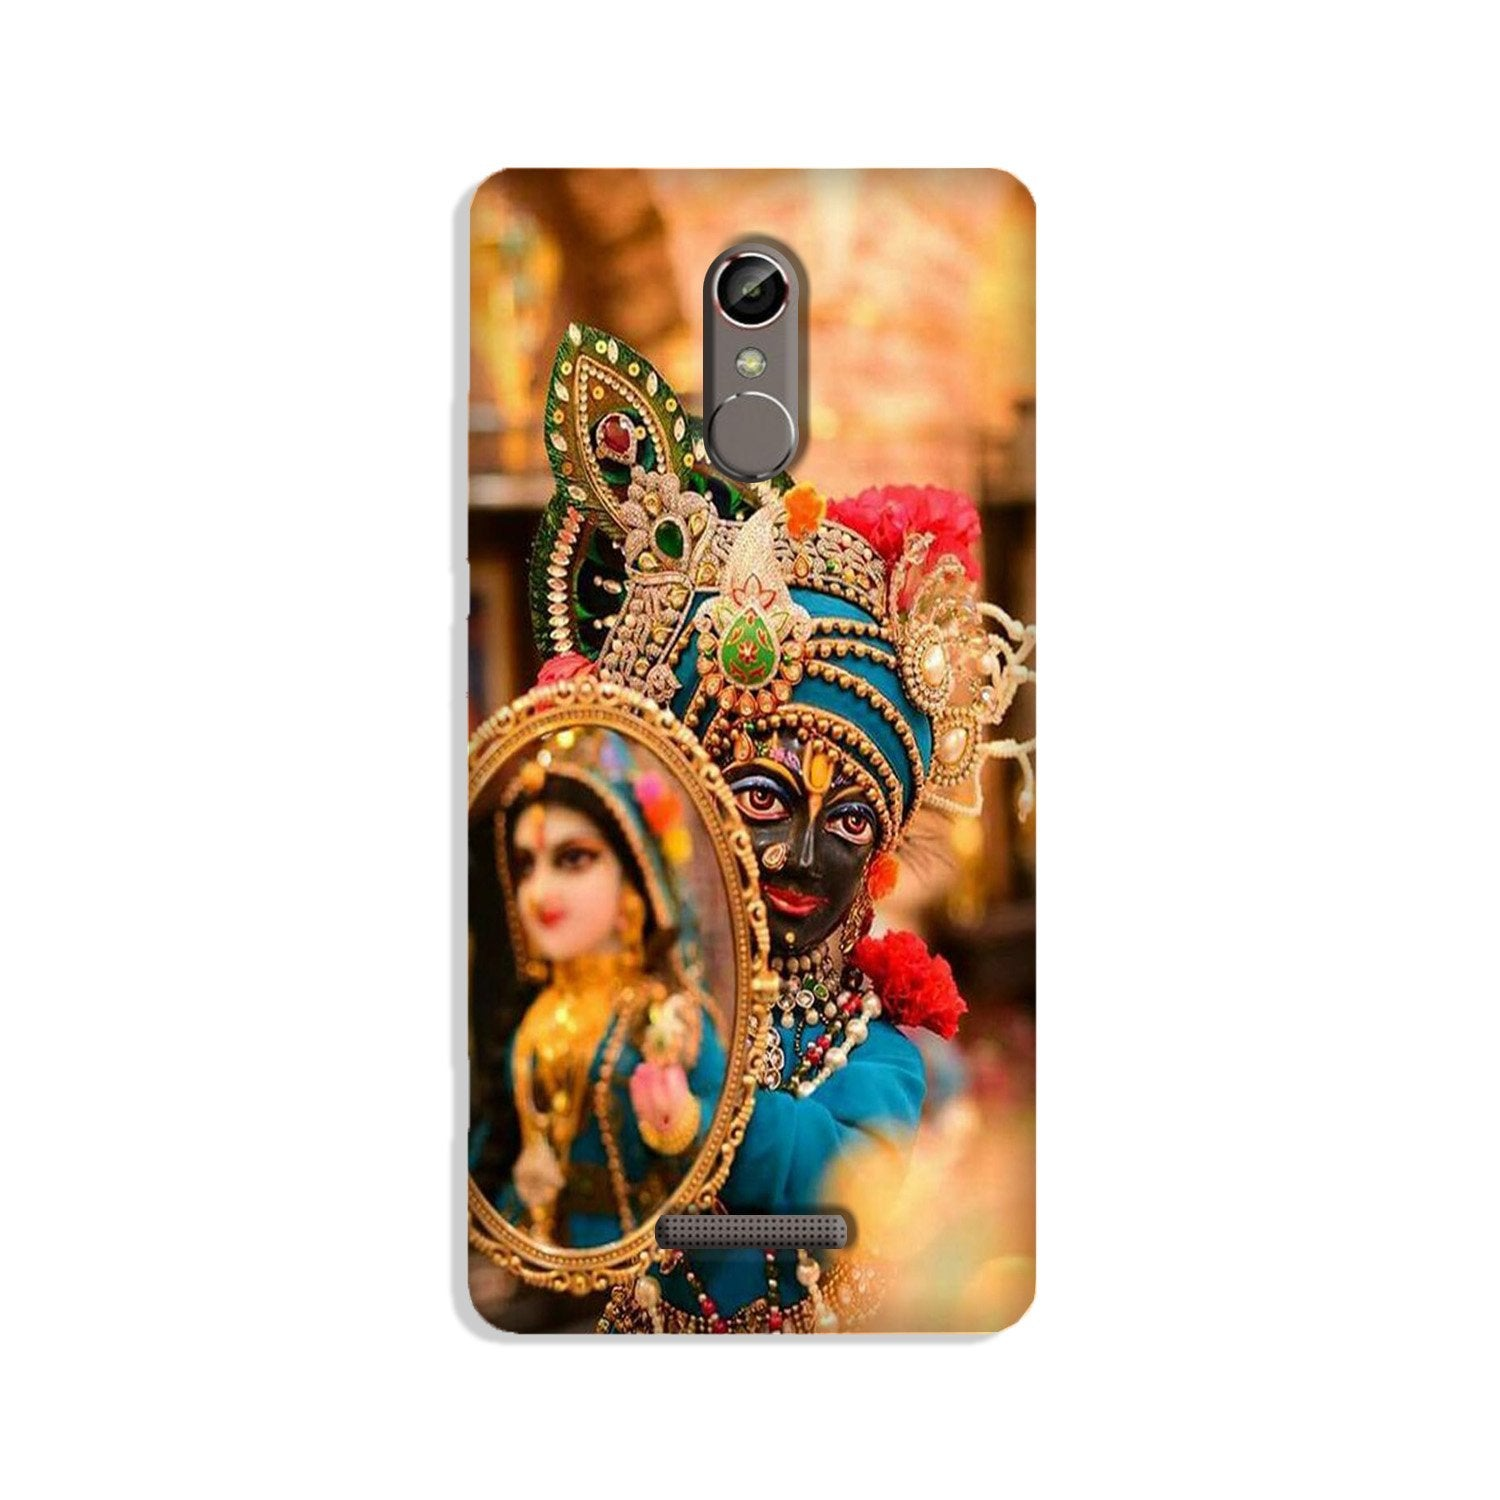 Lord Krishna5 Case for Redmi Note 3